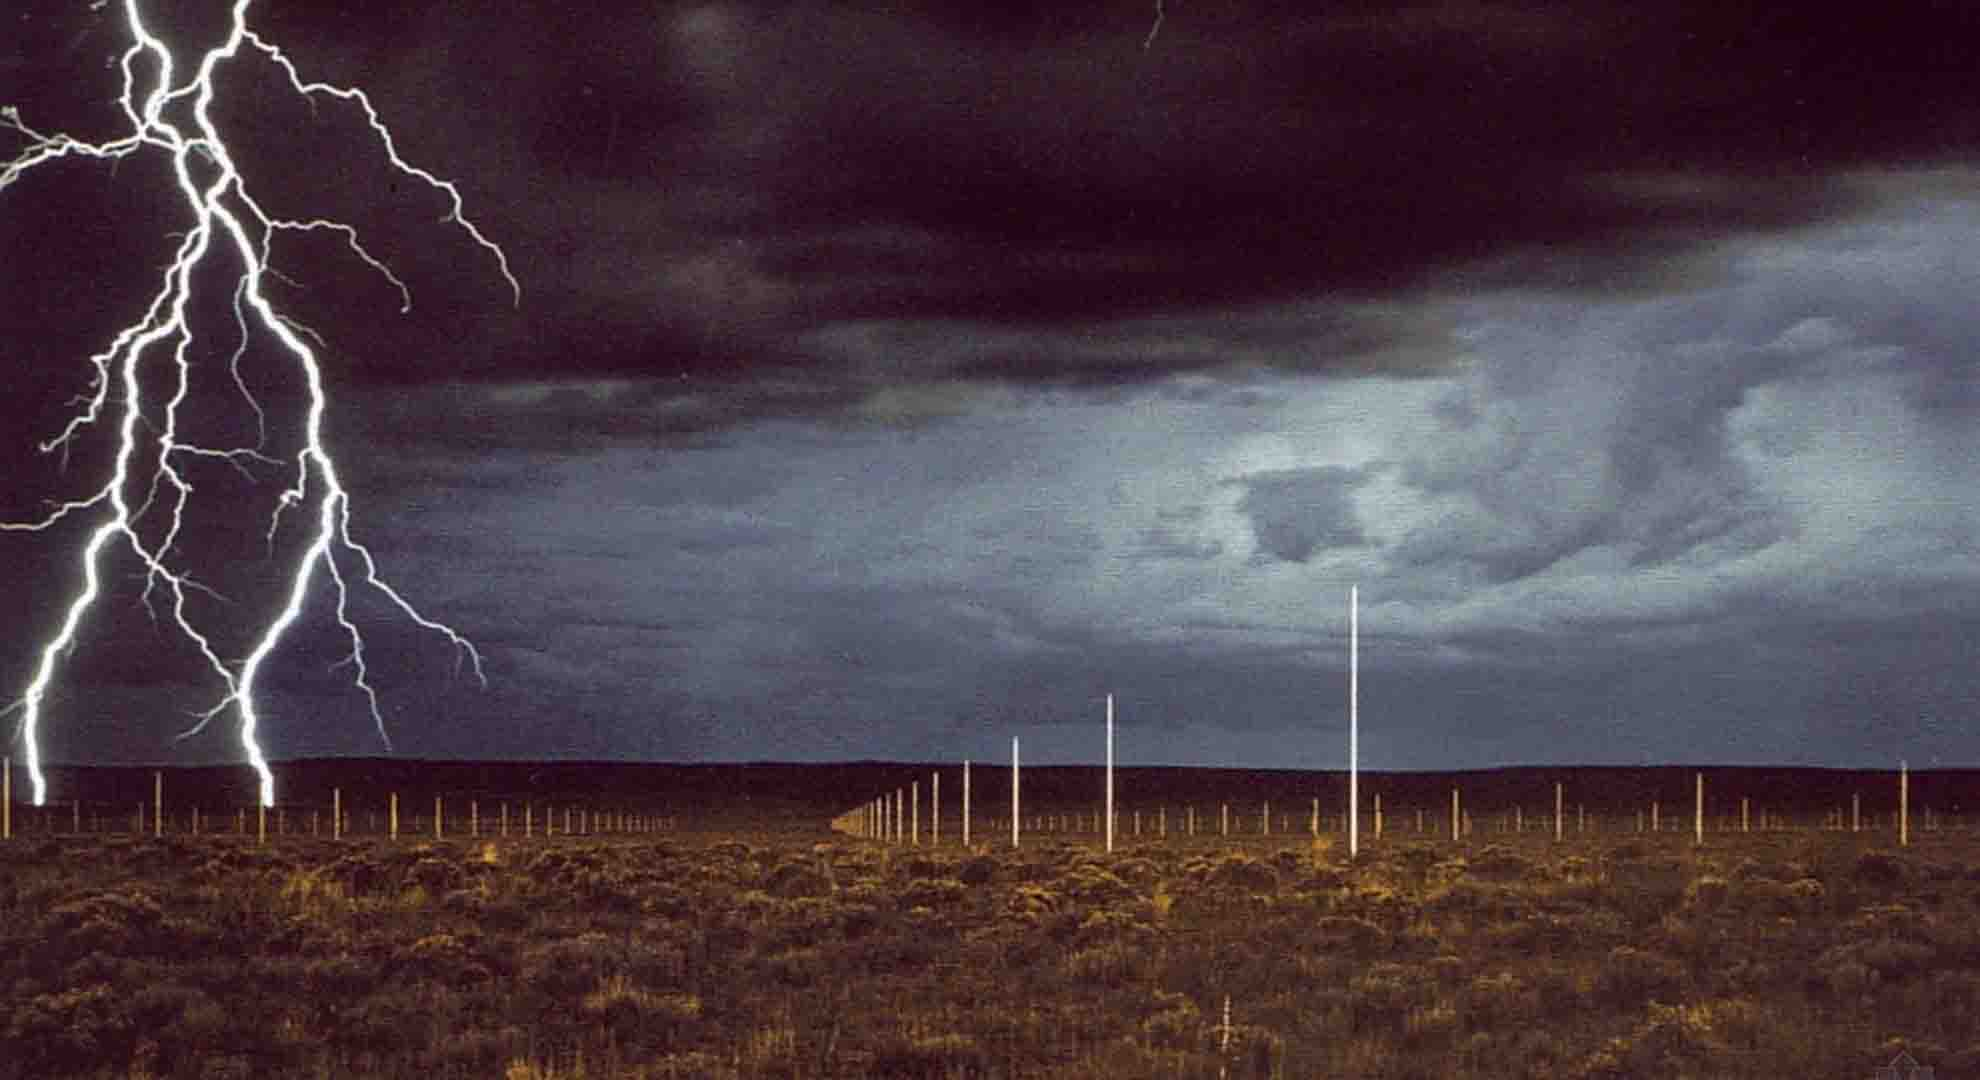 The Lightning Field is a Land Art project by Walter de Maria